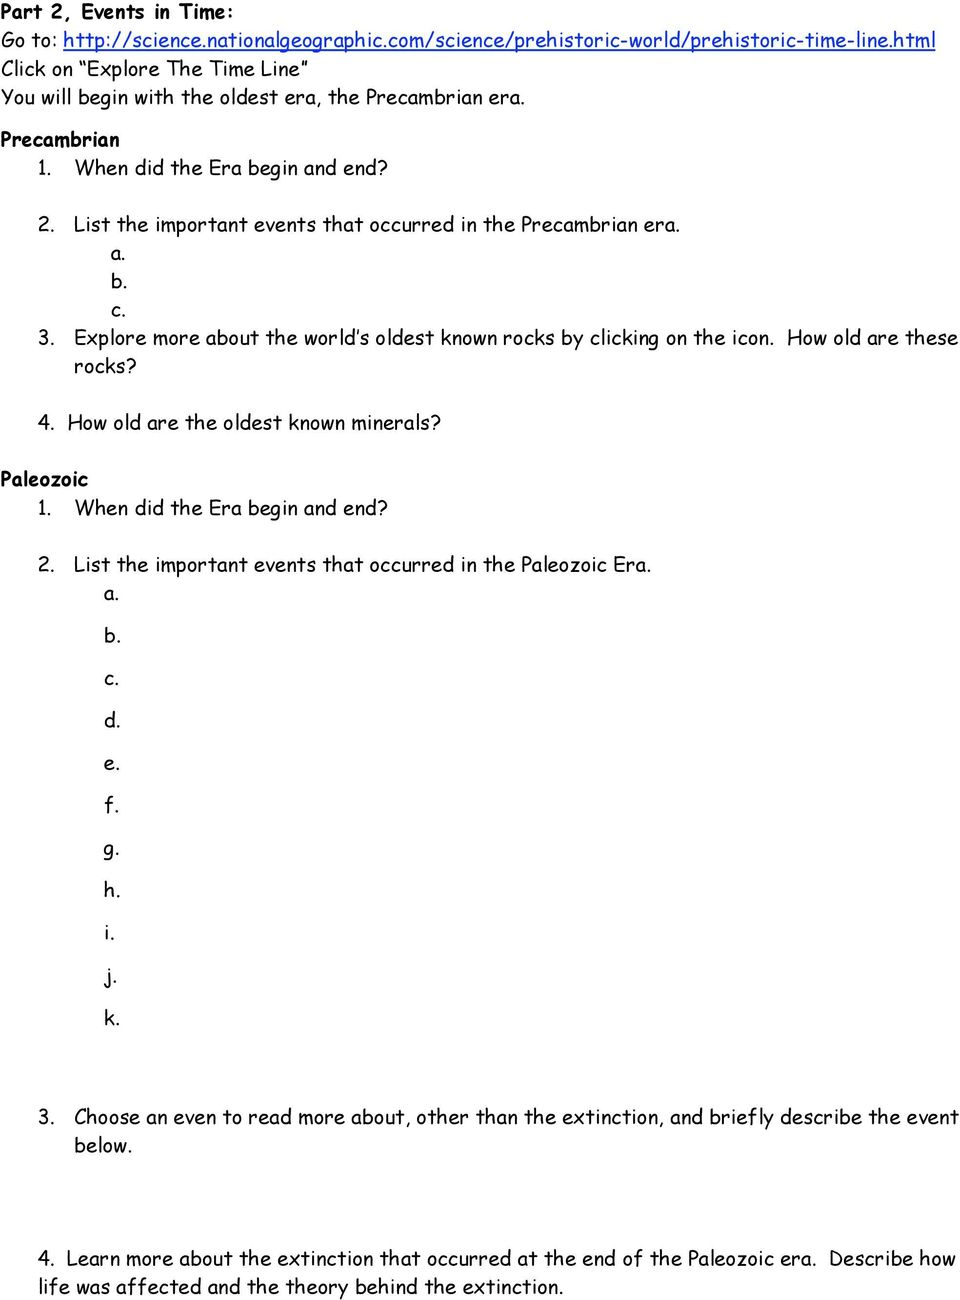 Planet Earth Shallow Seas Worksheet carolinabeachsurfreport – Planet Earth Shallow Seas Worksheet